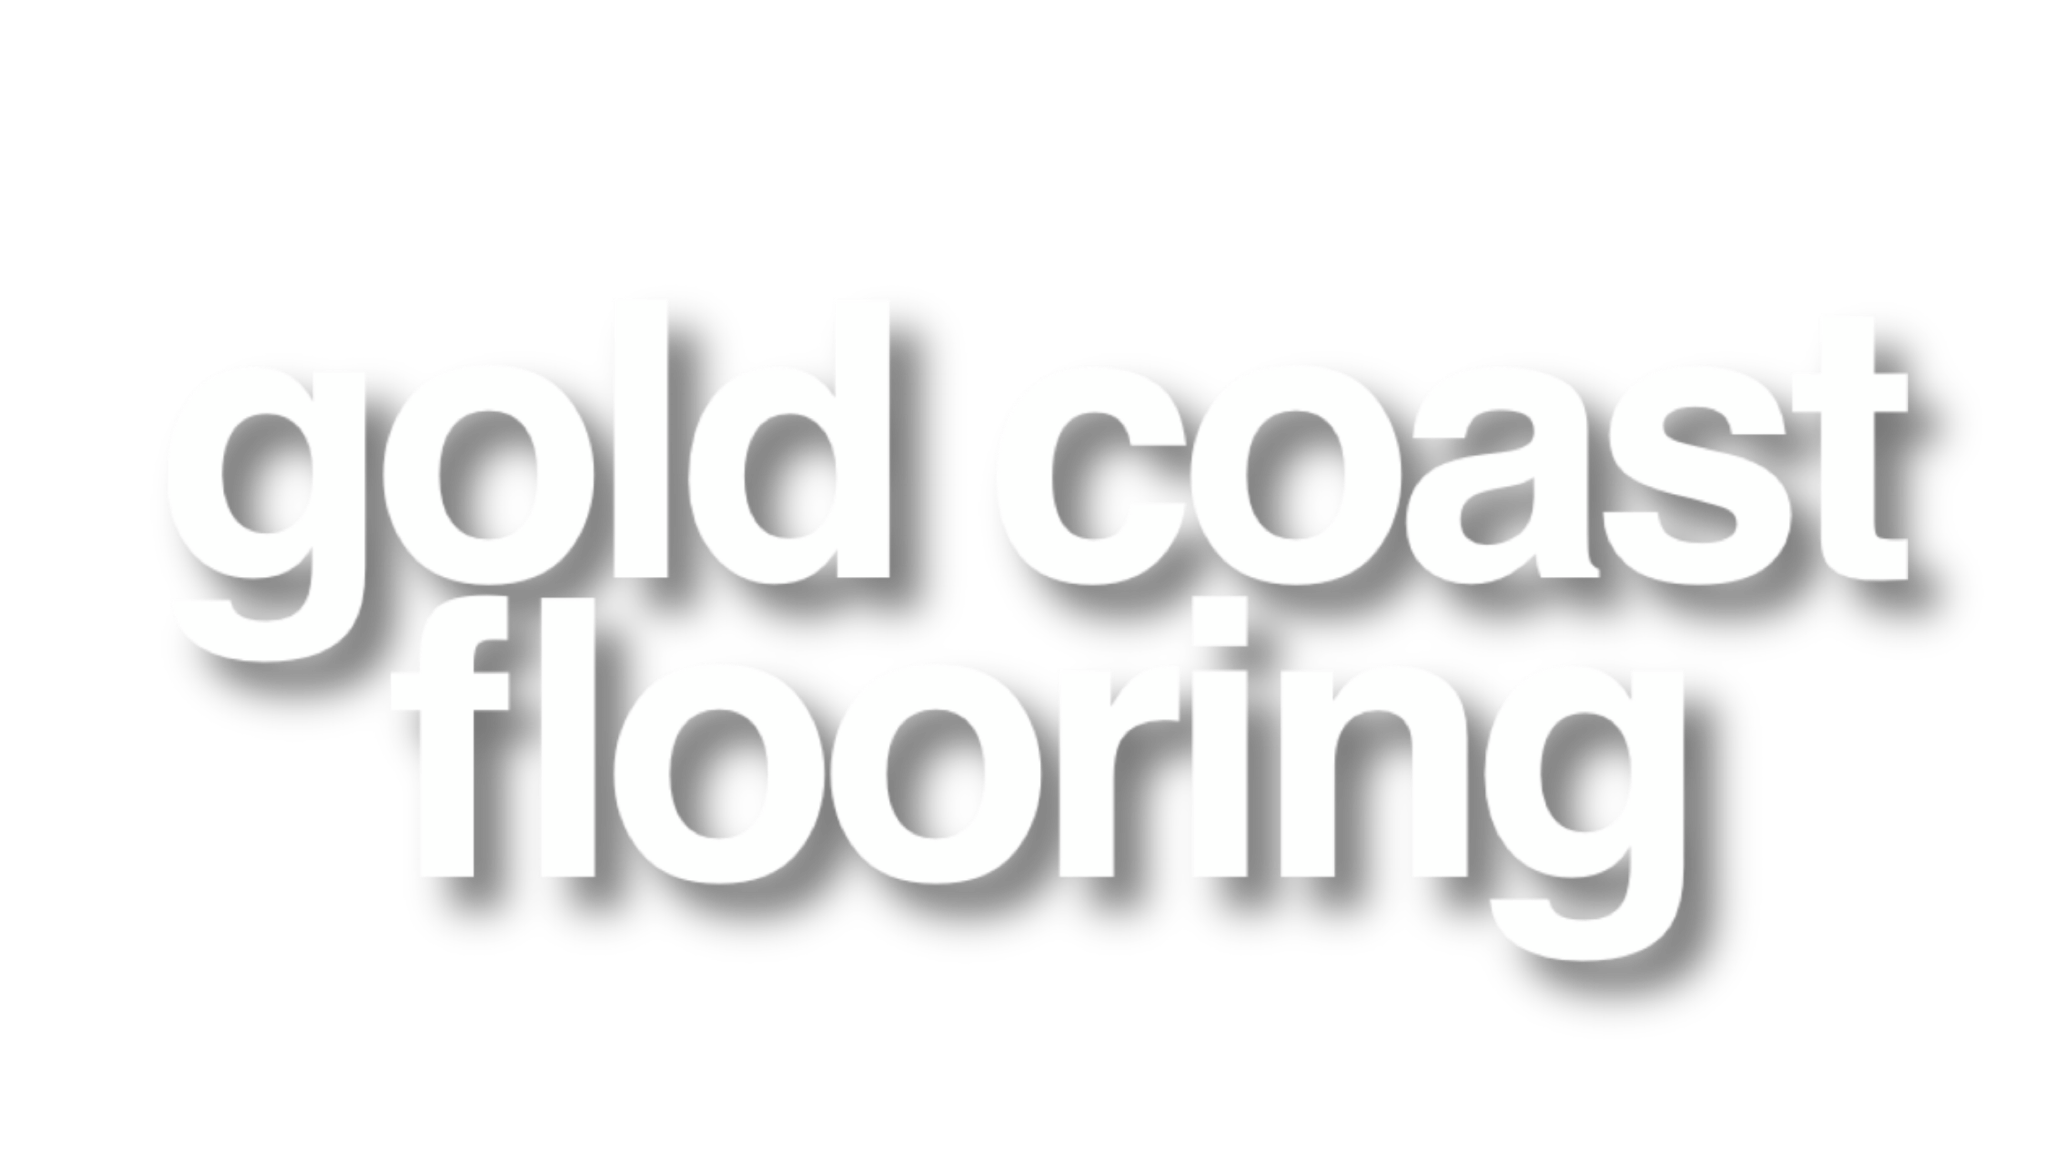 GOLD COAST FLOORING